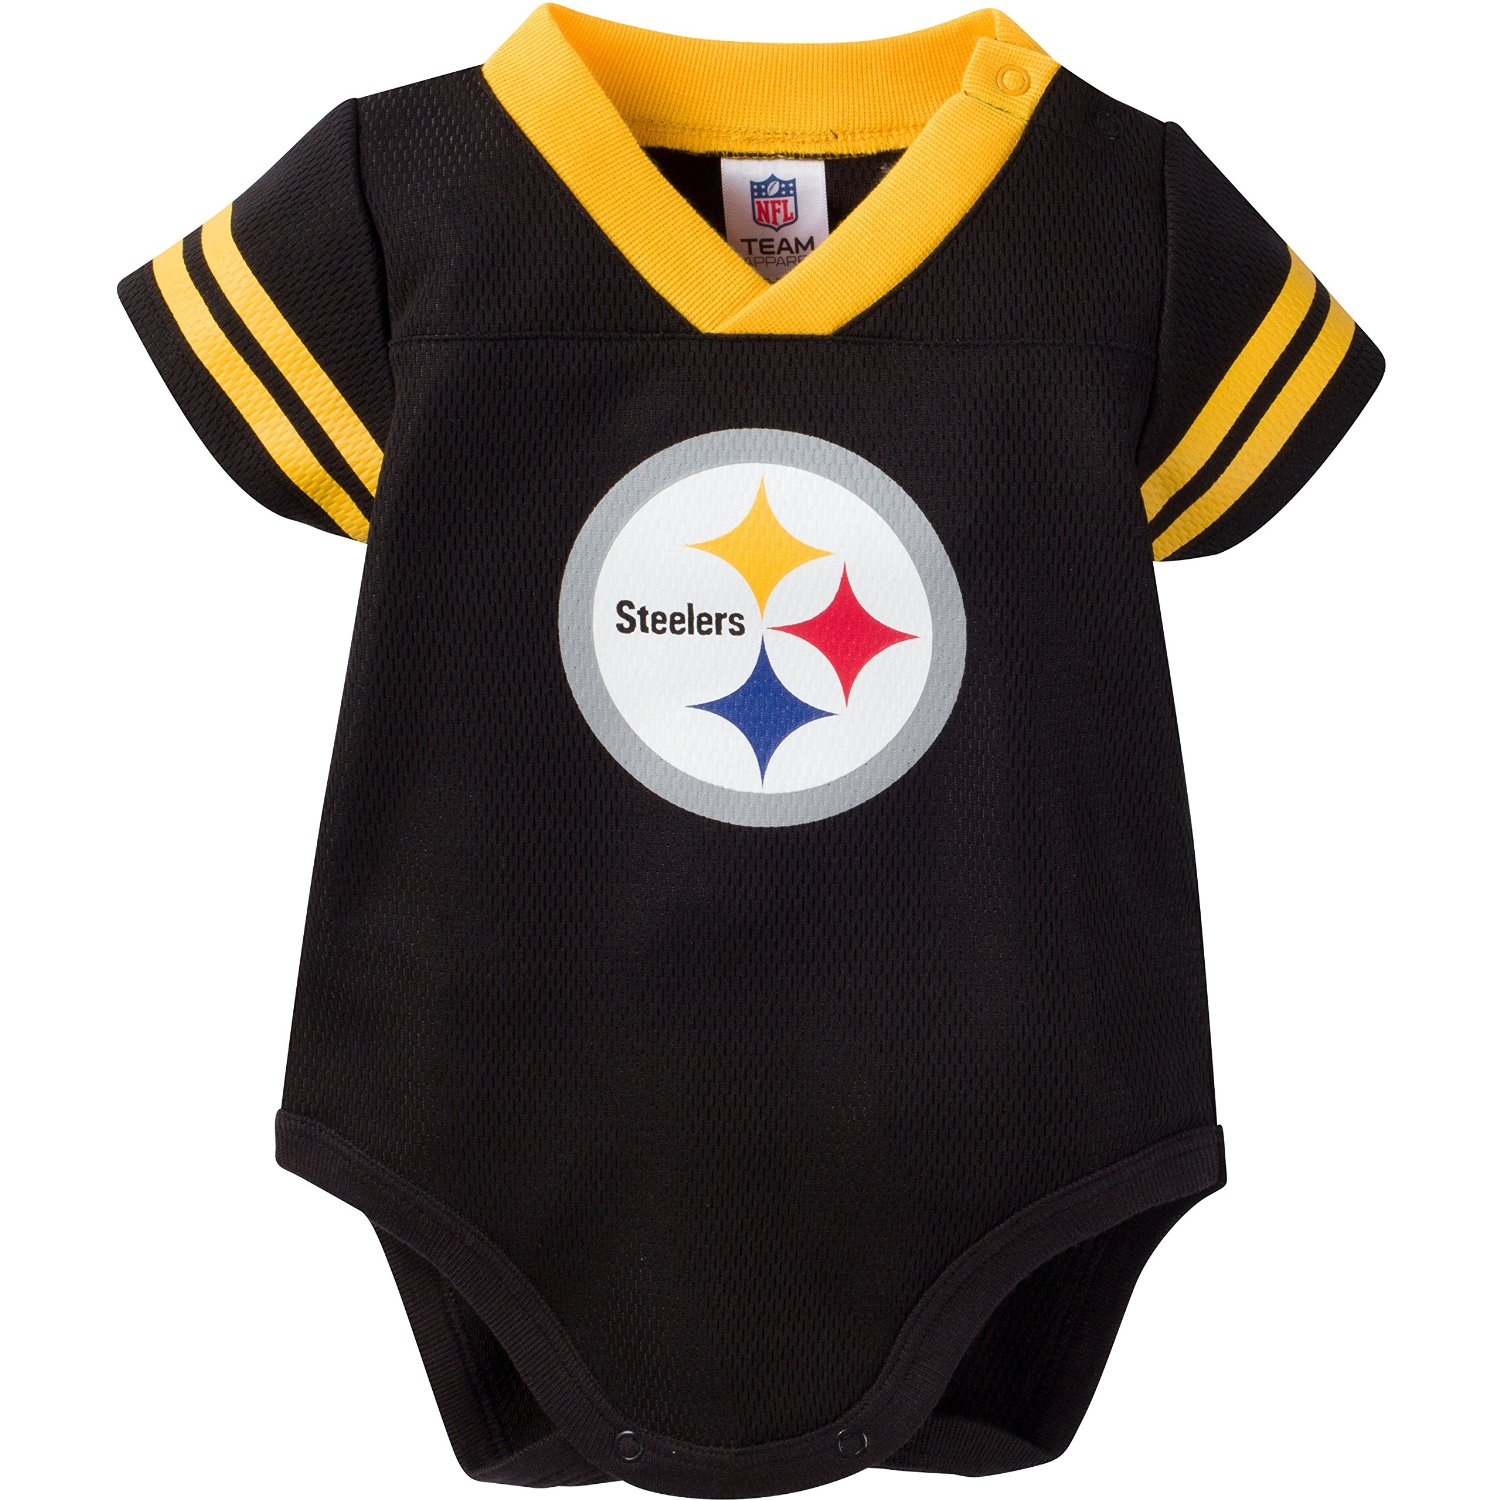 nfl-steelers-dazzle-player-jersey-2-stripe-bodysuit.jpg